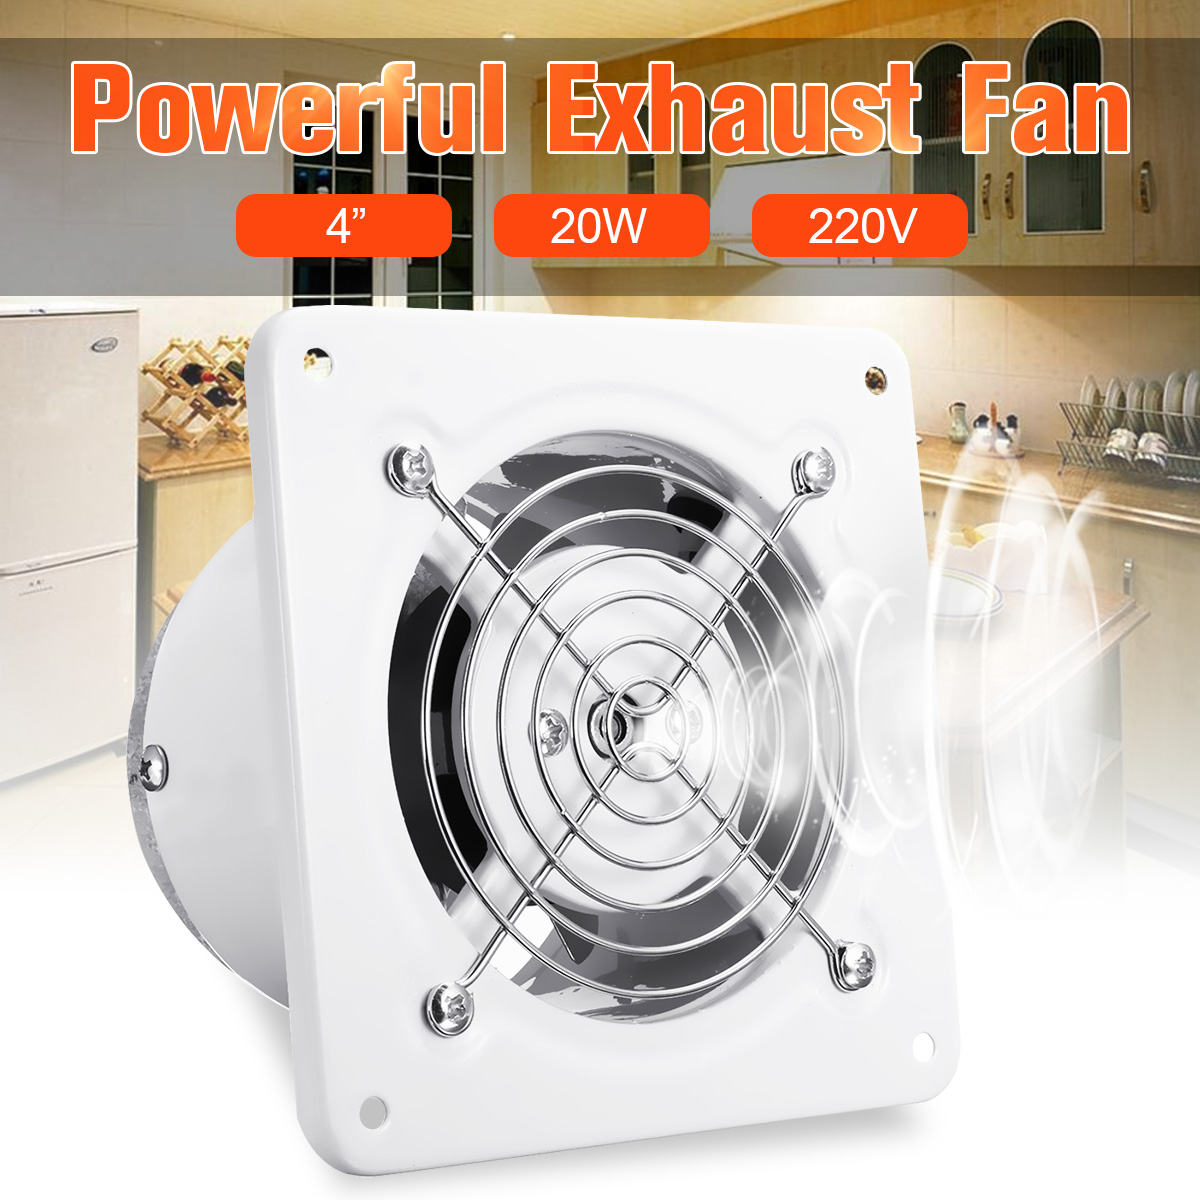 4 Inch 20W Bathroom Extractor Exhaust Fan Duct Booster Fan Blower Air Ventilation Vent Toilet Kitchen Hanging Wall Window Glass